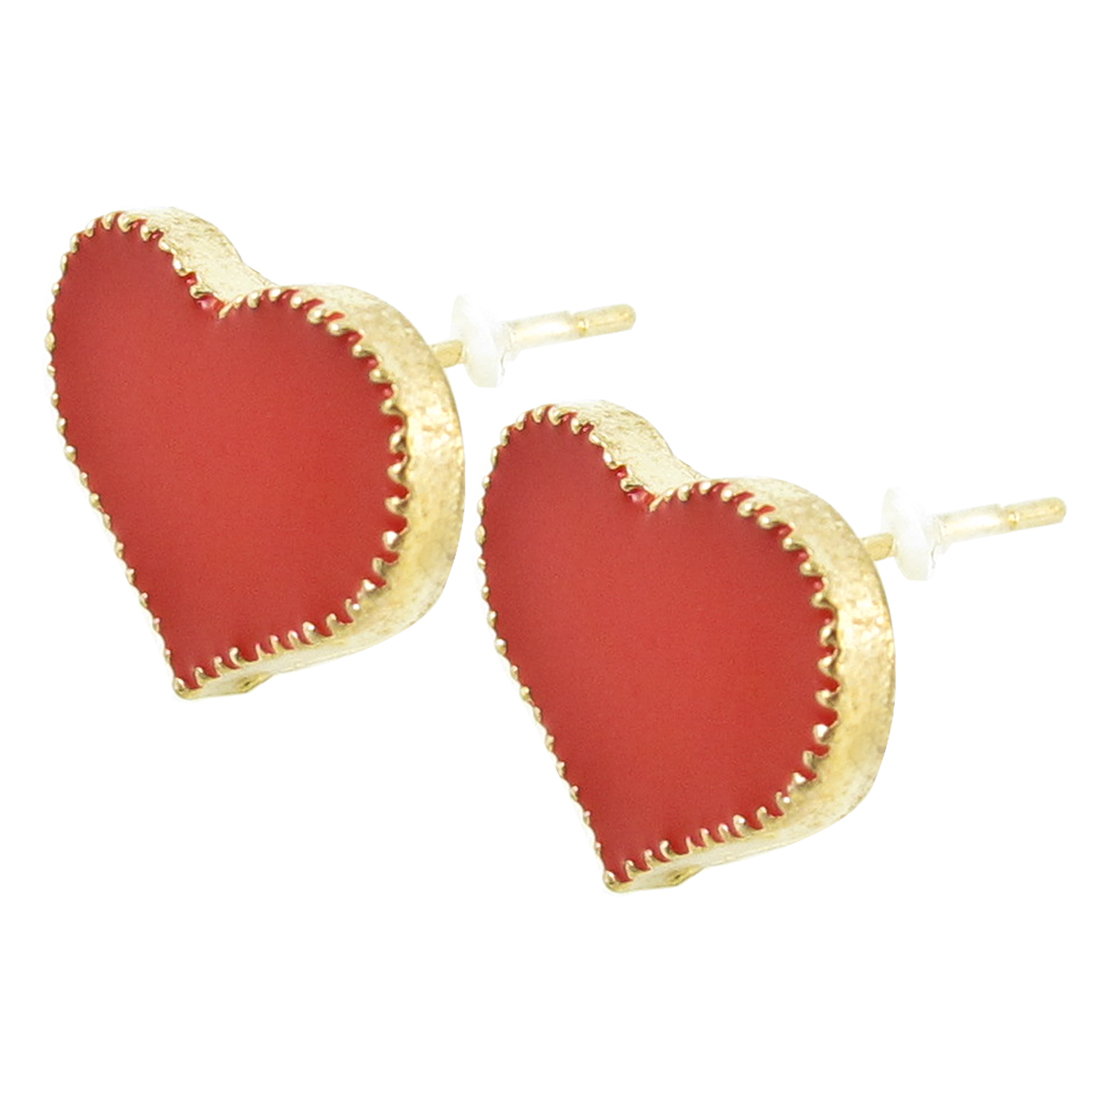 Pair Red Gold Tone Heart Design Earring Stud for Ladies